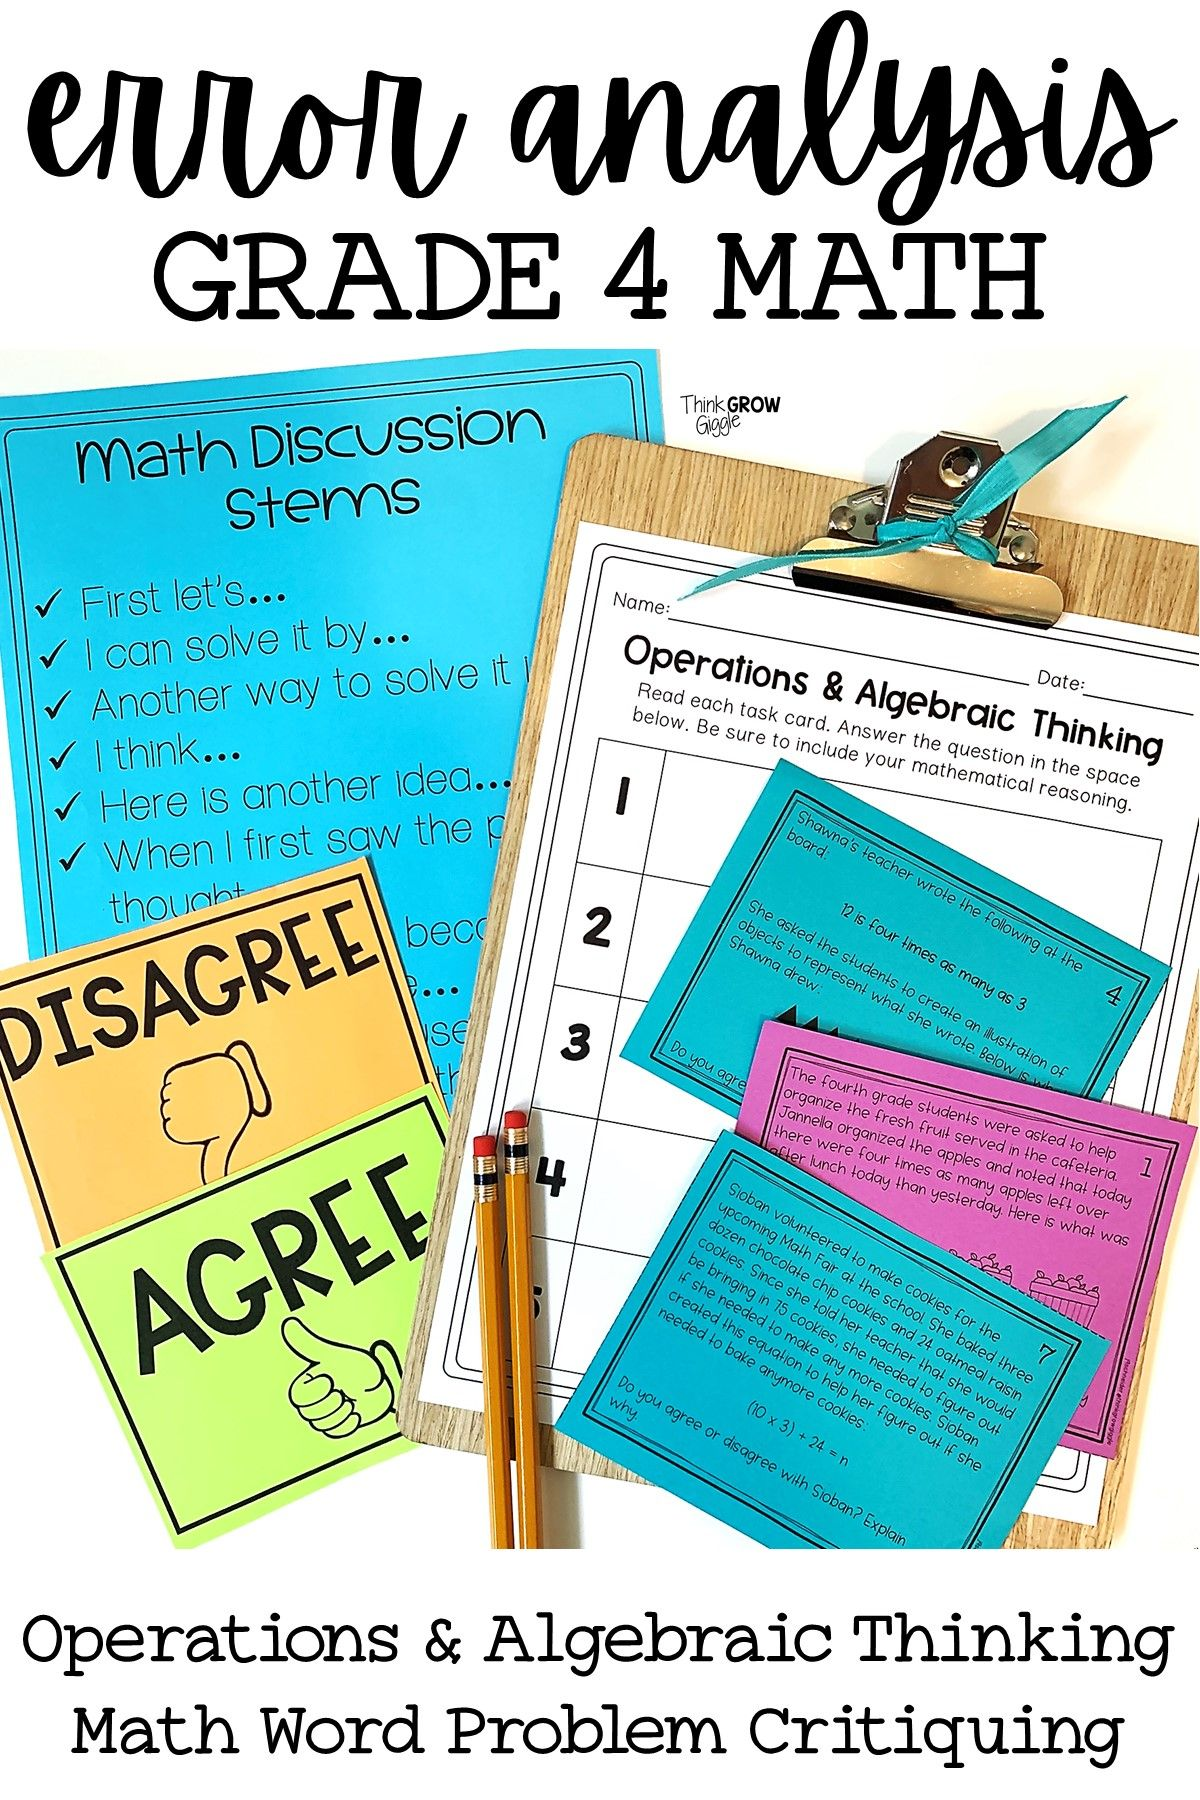 Algebraic Thinking 4th Grade Worksheets   Printable Worksheets and  Activities for Teachers [ 1800 x 1200 Pixel ]